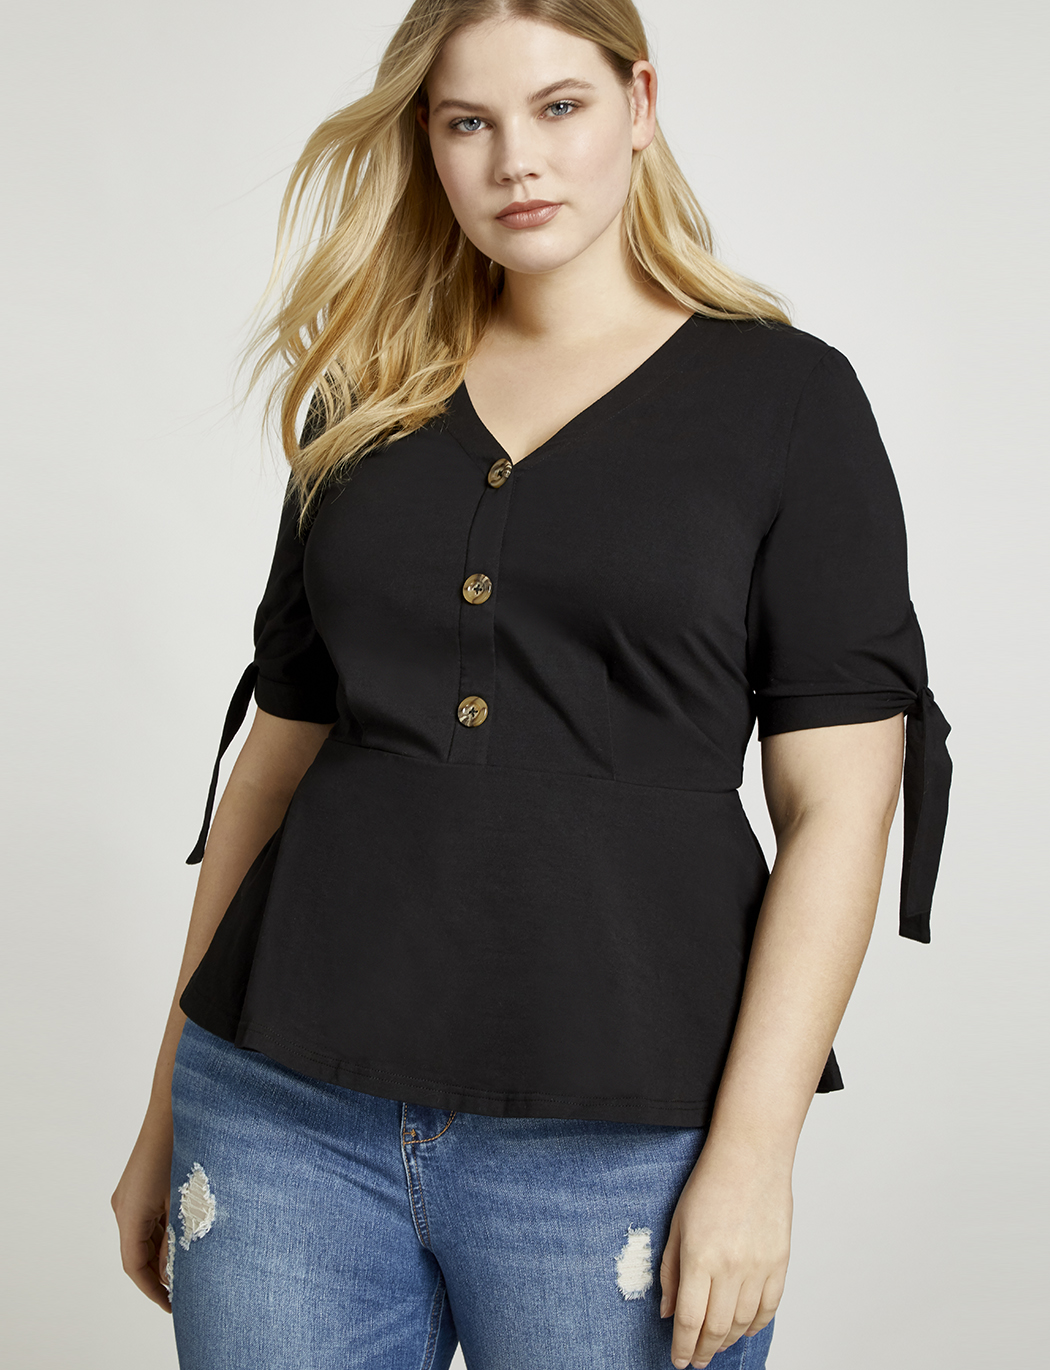 1bfb8d6bba Tie Sleeve Button Down Blouse | Women's Plus Size Tops | ELOQUII